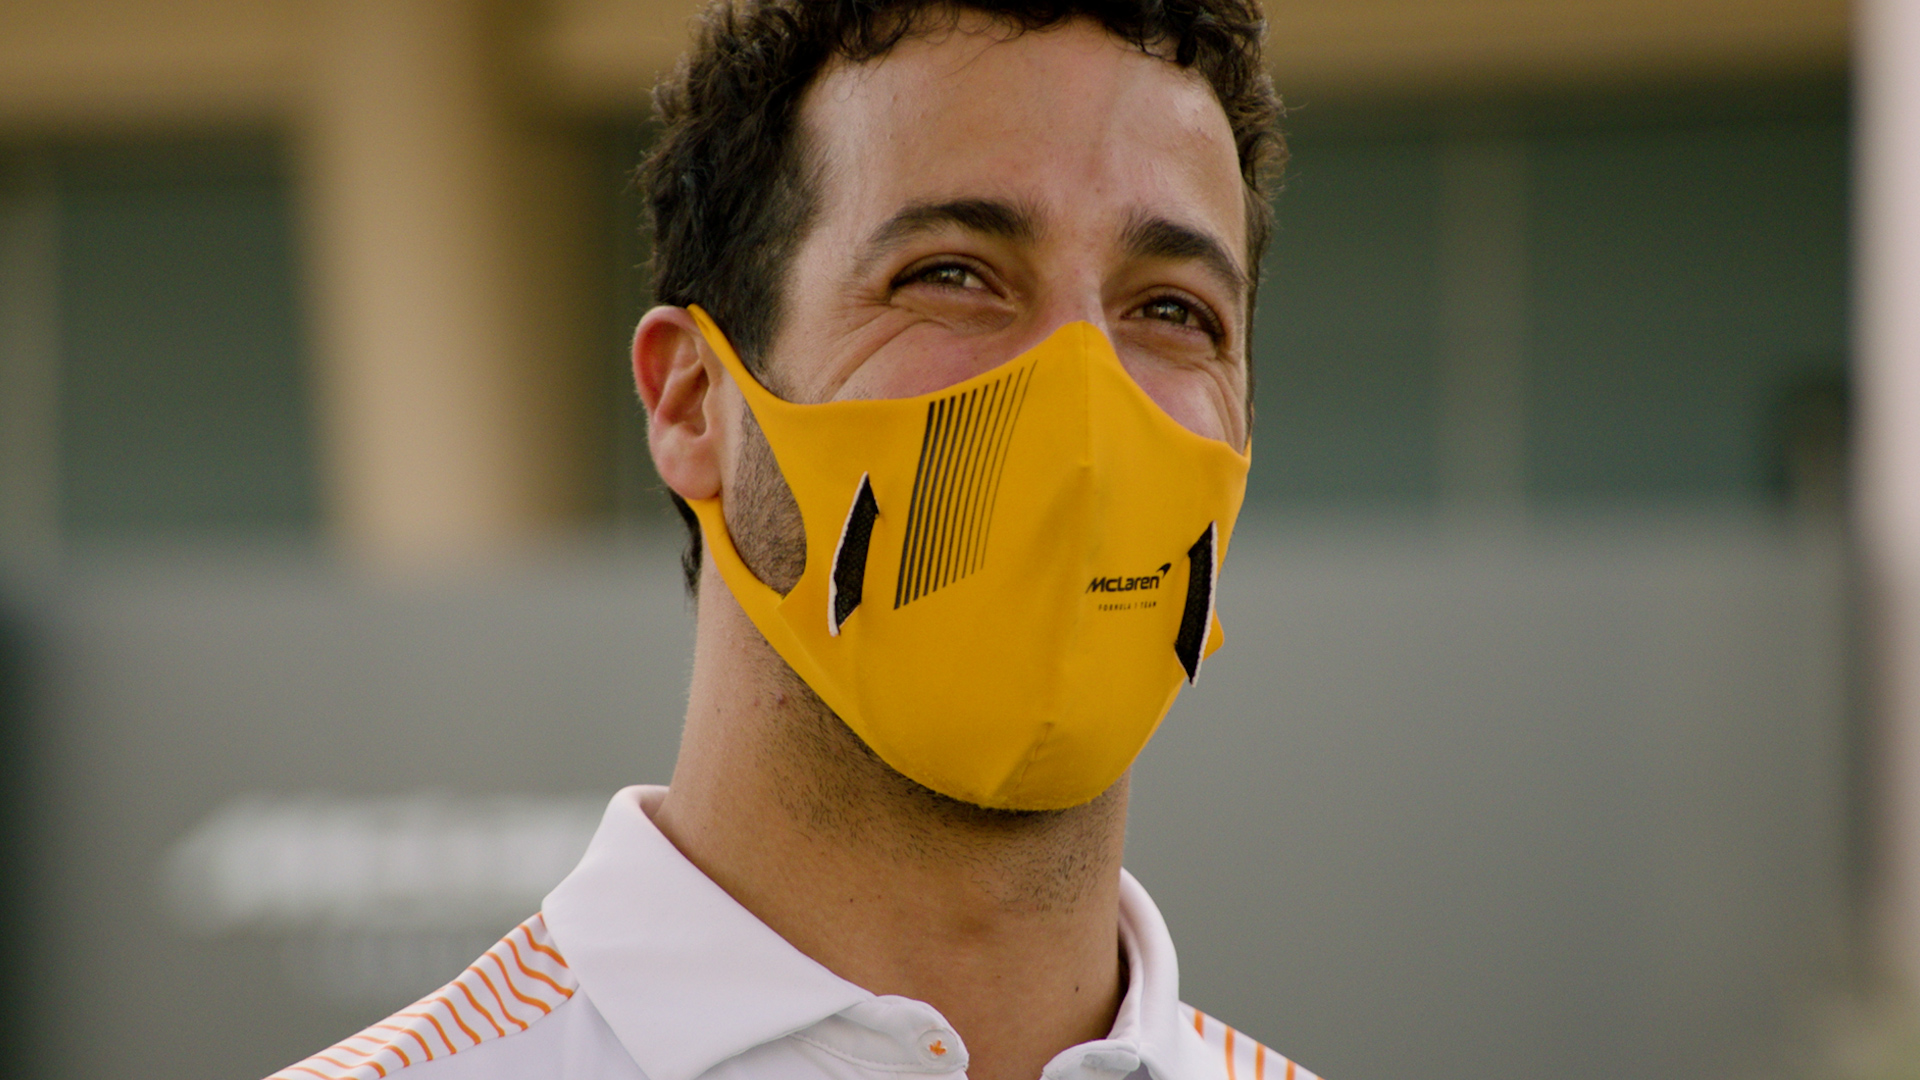 IN-DEPTH INTERVIEW: Daniel Ricciardo on title target and 10 years in F1